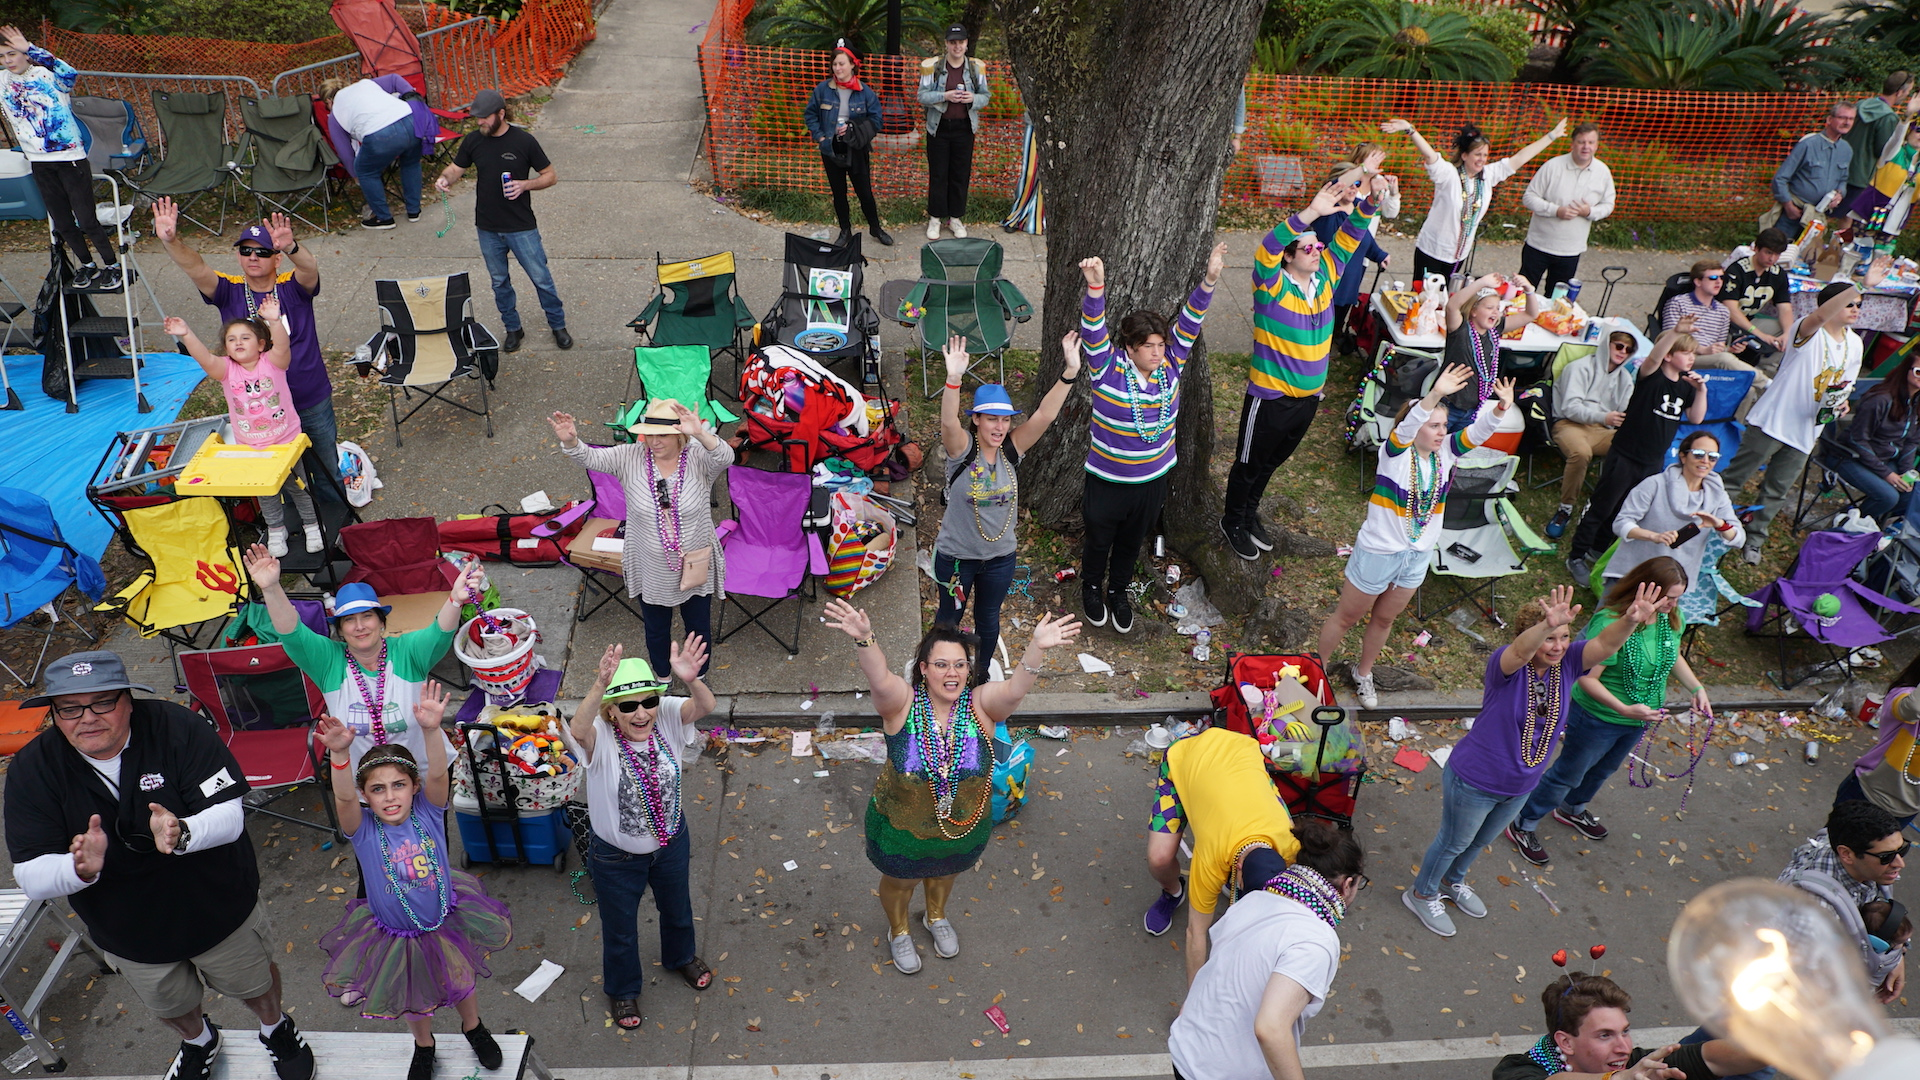 How to do Mardi Gras like a local, according to a krewe